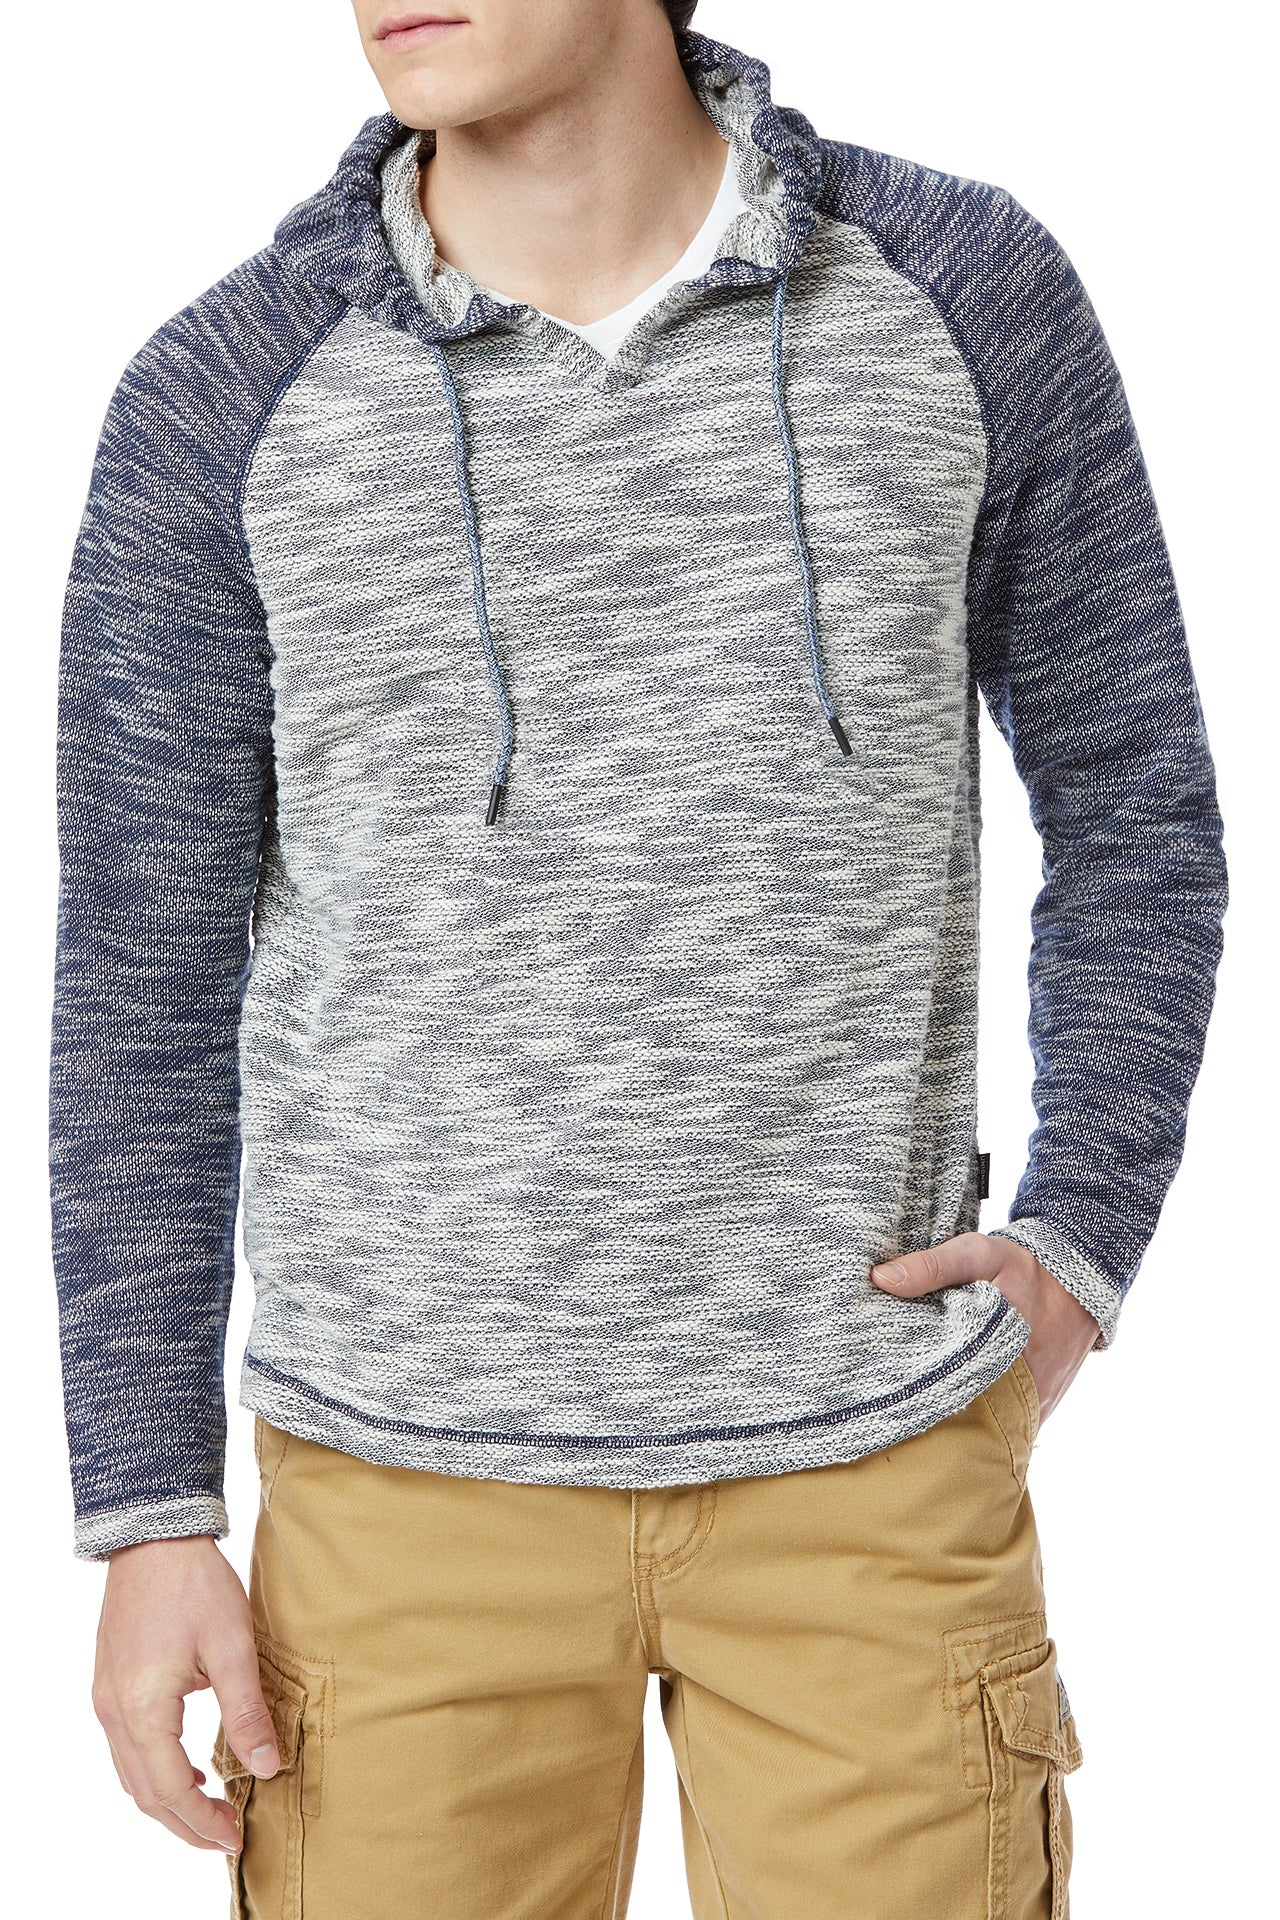 laguna raglan hoodie (reg and big sizes)